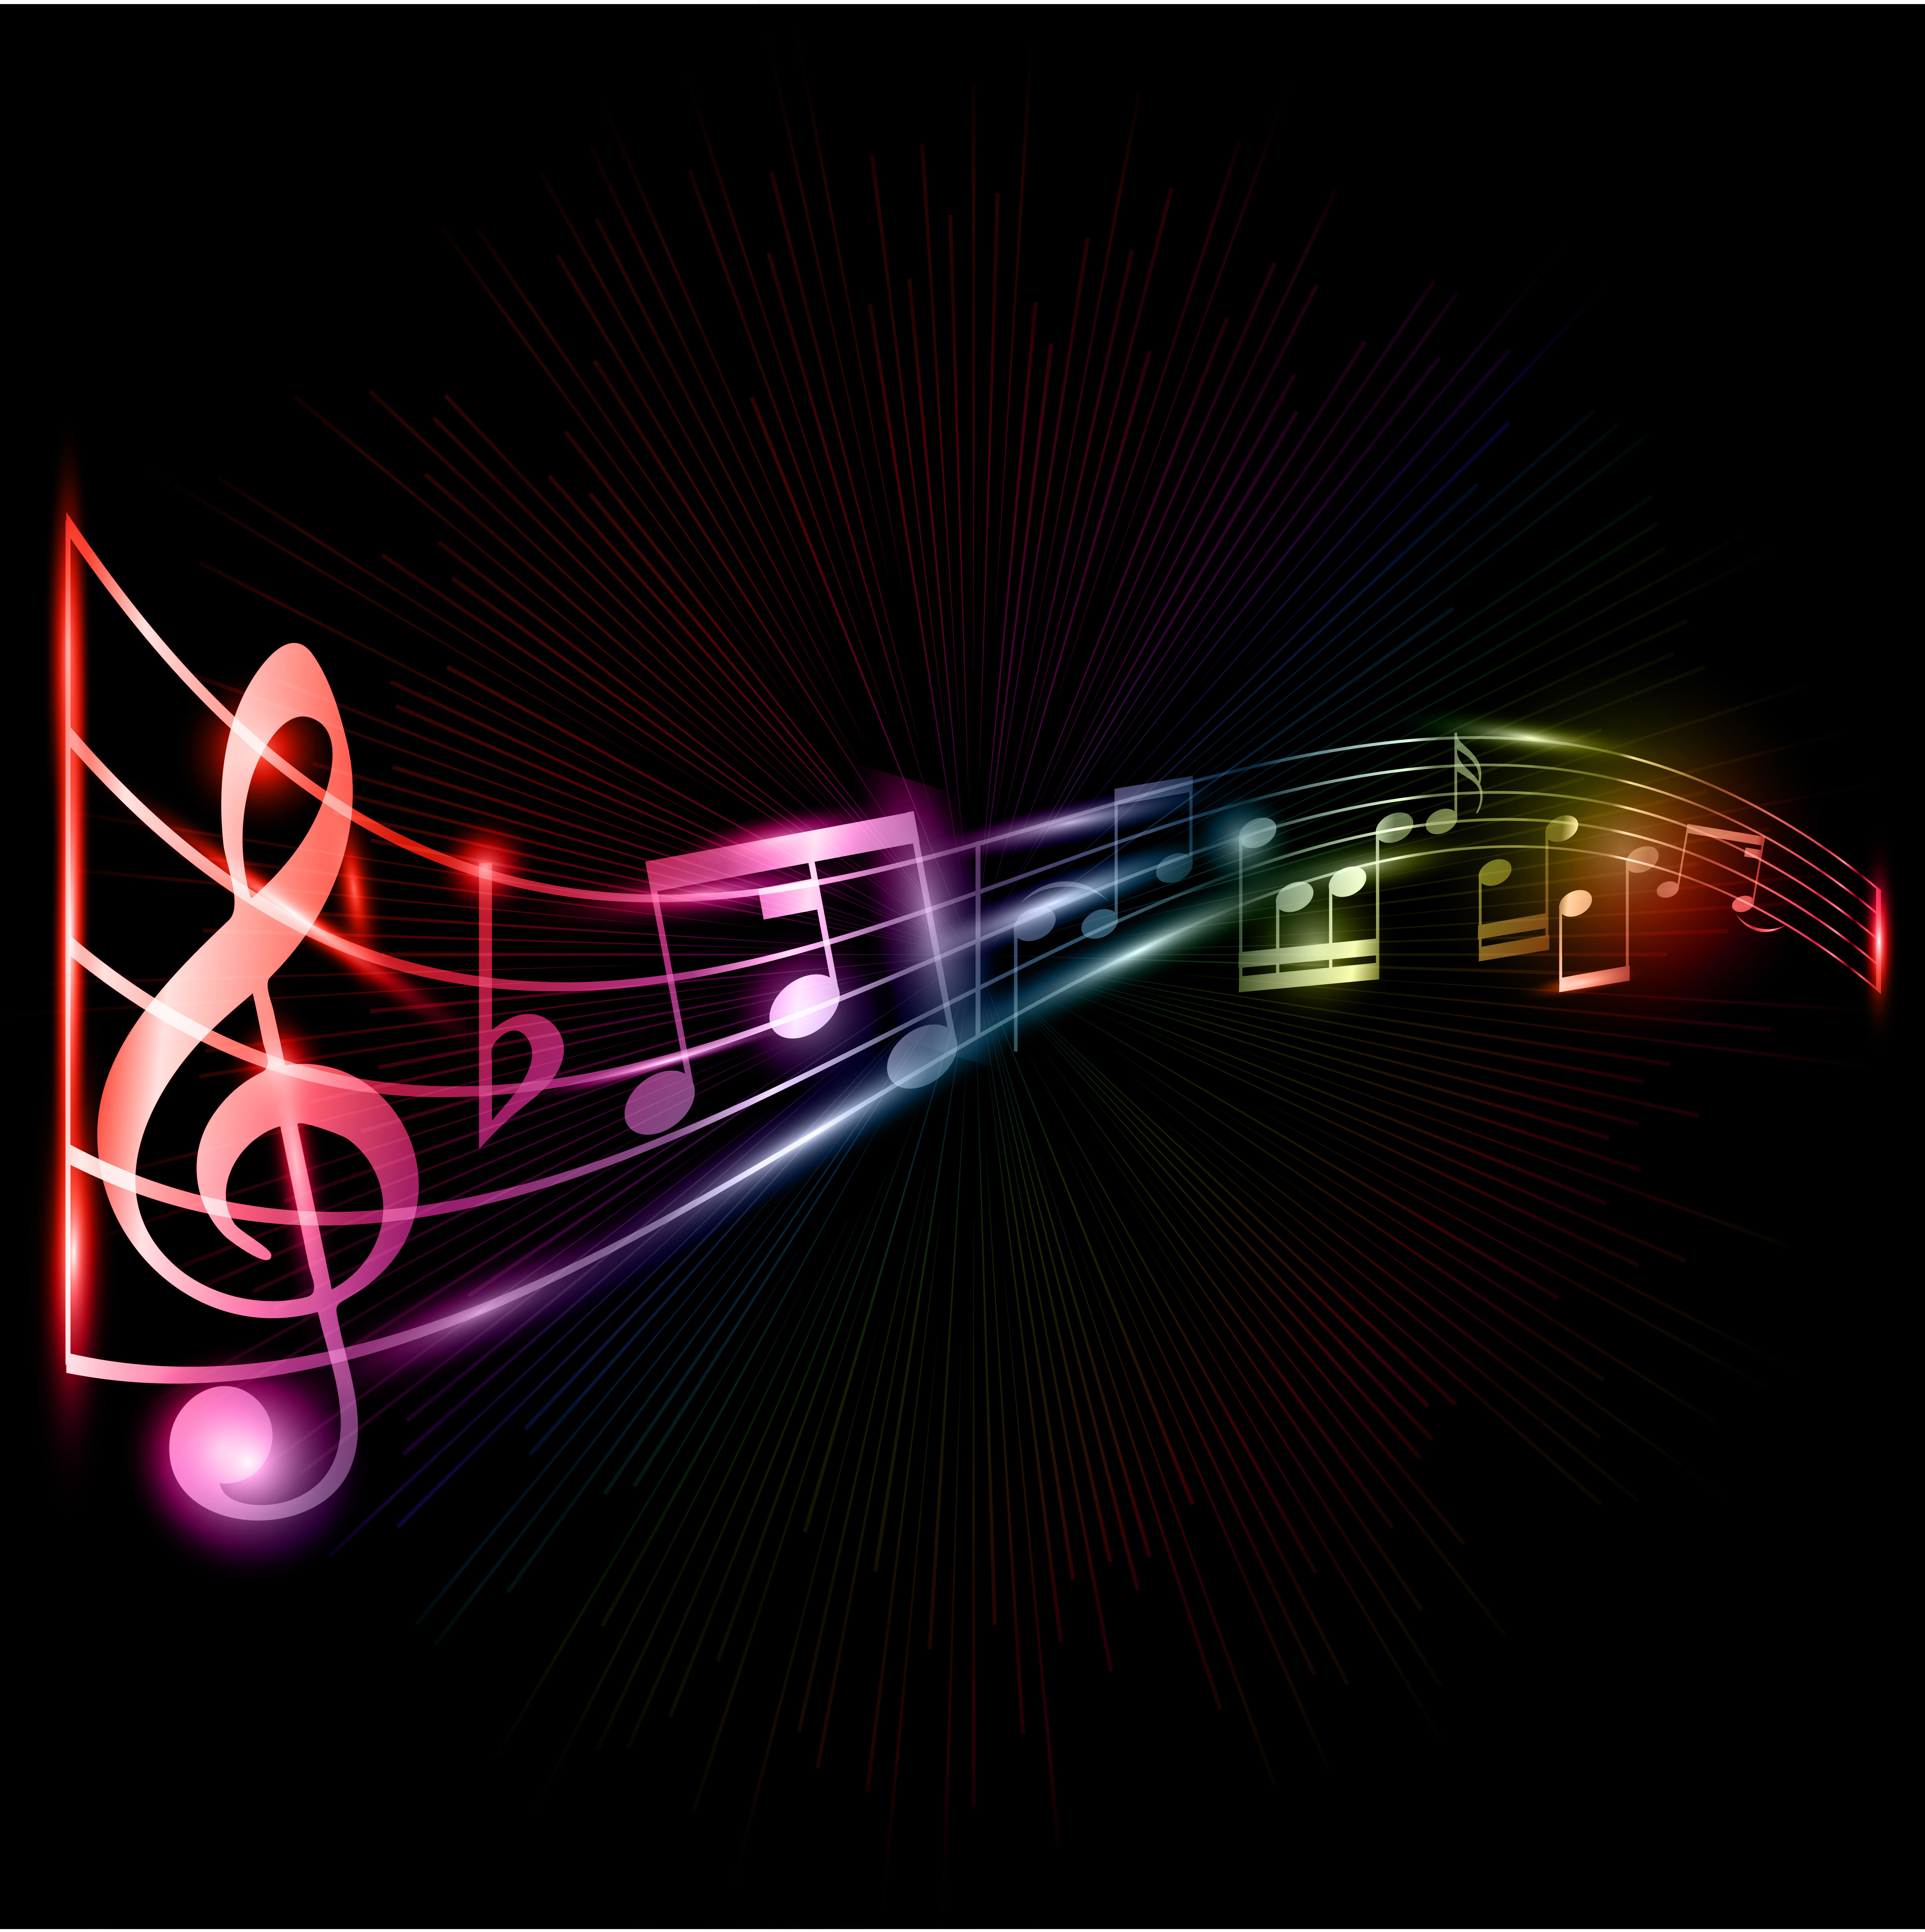 Cool Musical Notes Background Neon music notes background 4724x4742